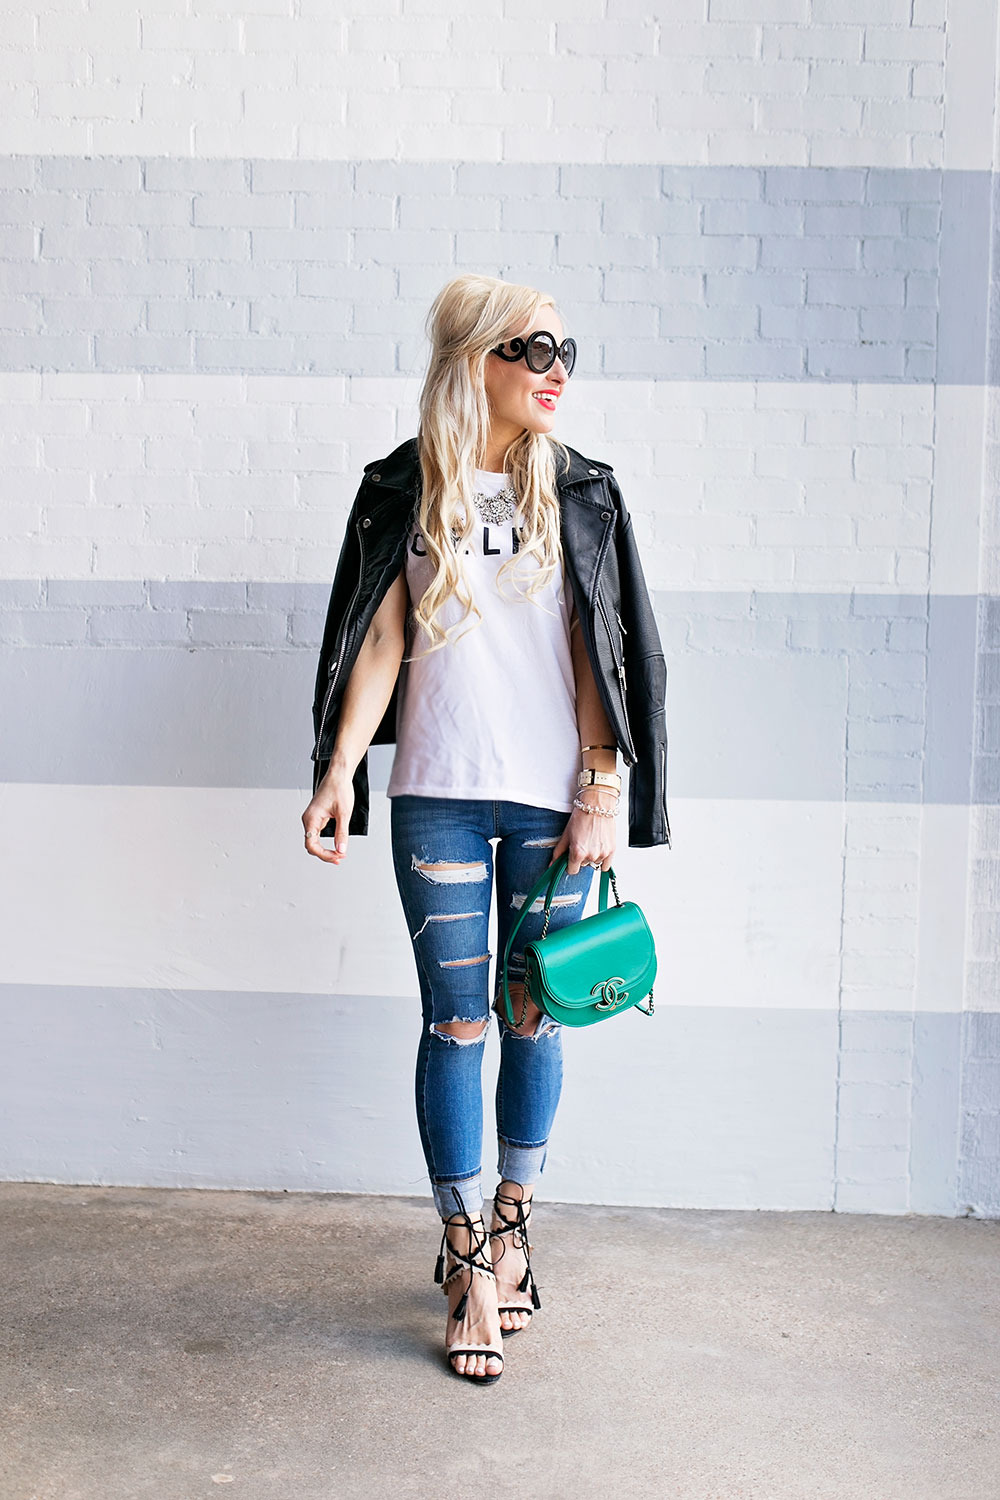 ripped-skinny-jeans-and-heels-oufit